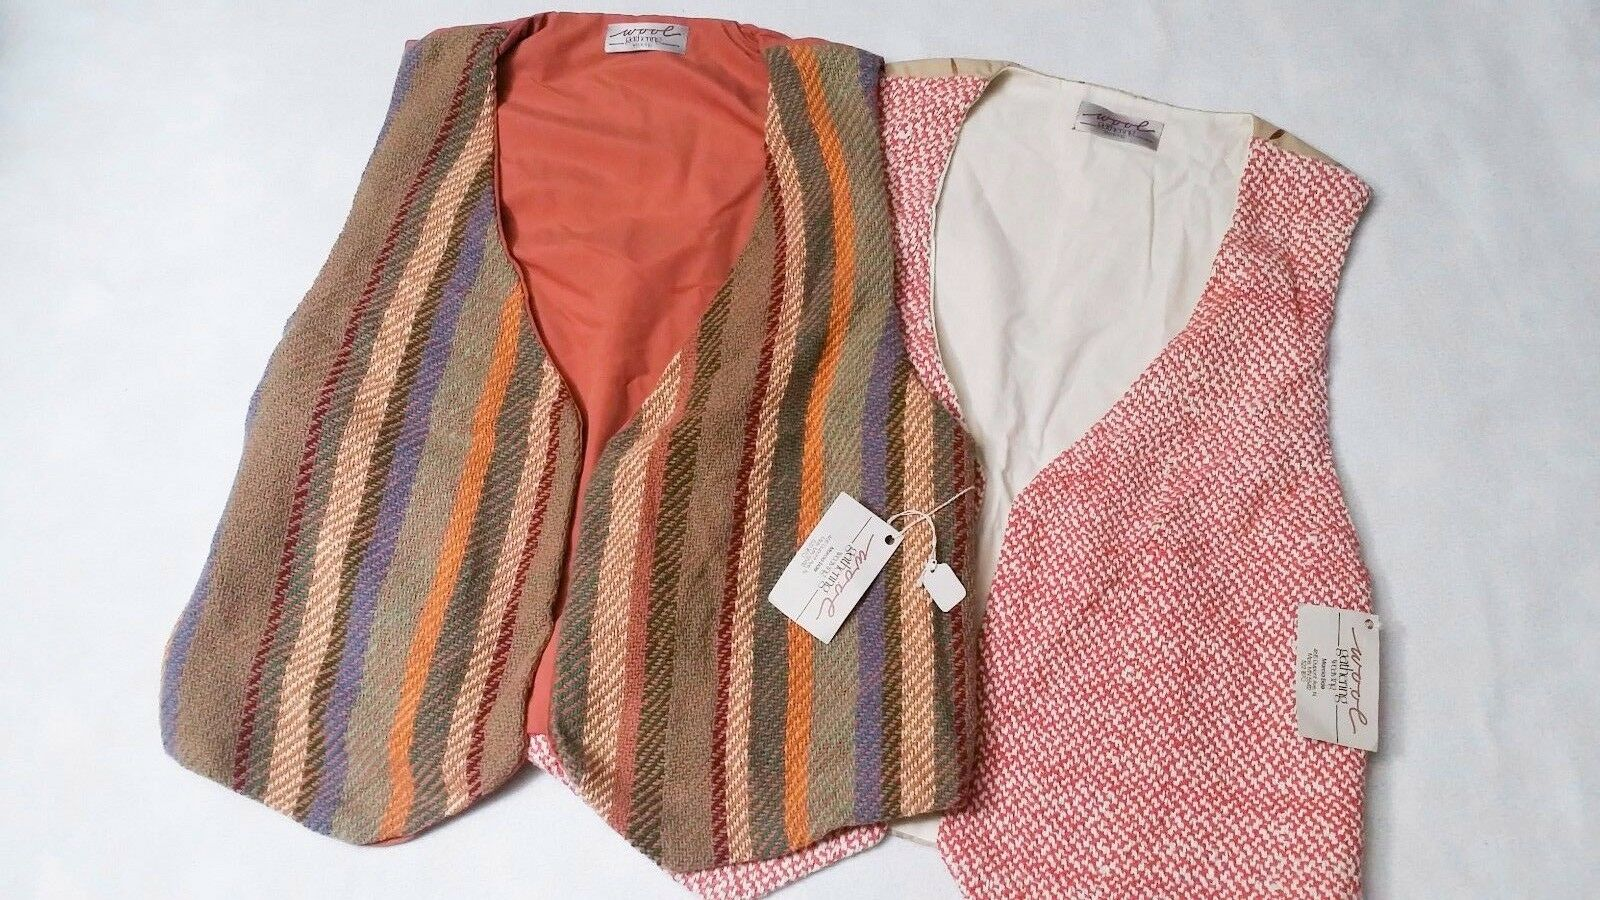 NWT Wool Gathering Weaving Women's Woven Woven Woven Vest 70's Style Vintage Red Striped L be2957